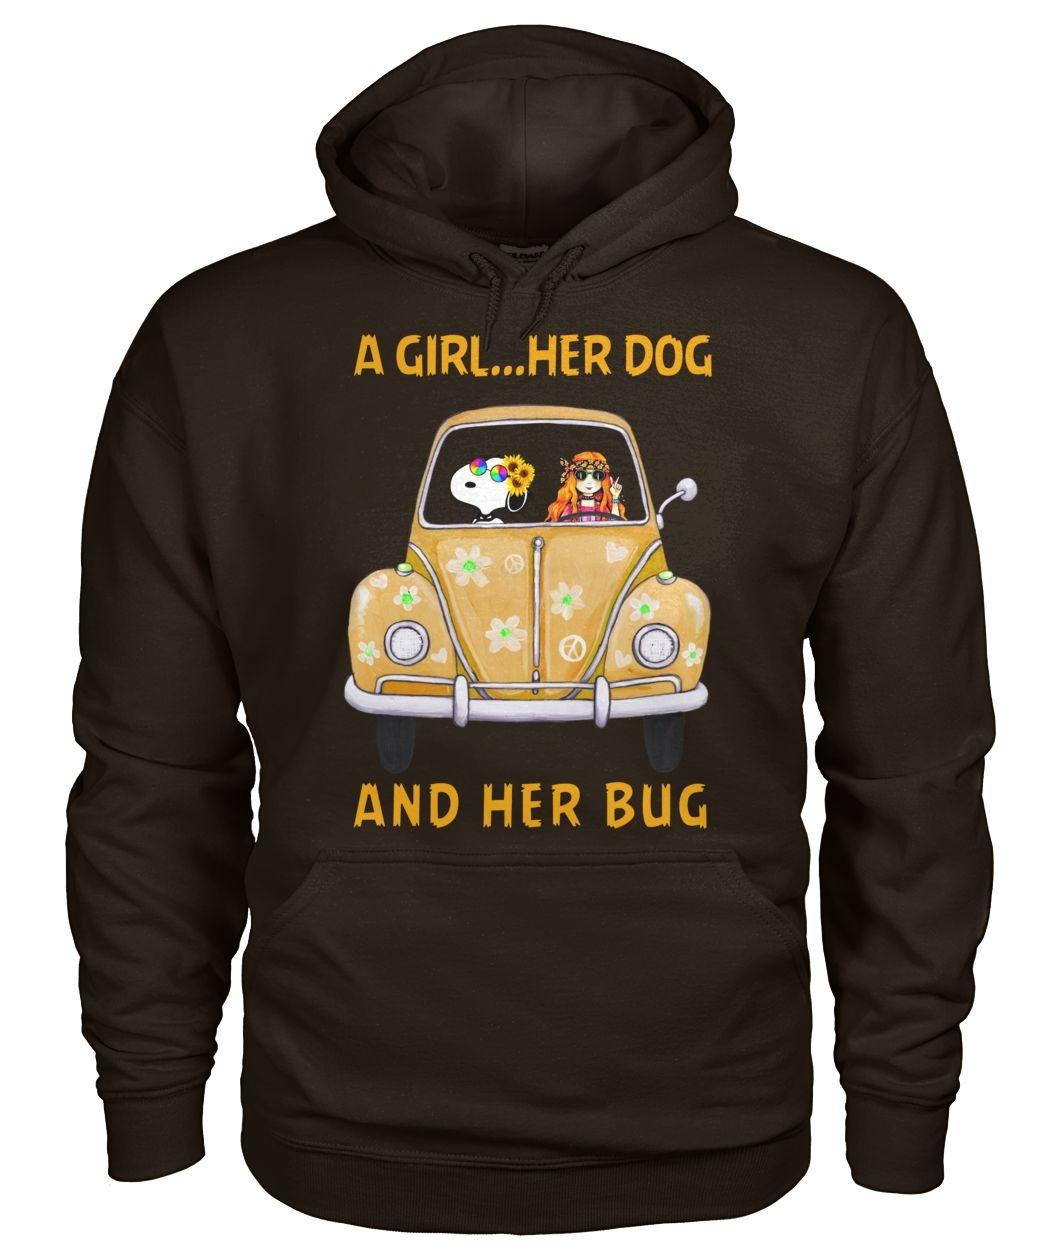 Snoopy a girl her dog and her bug Hoodie